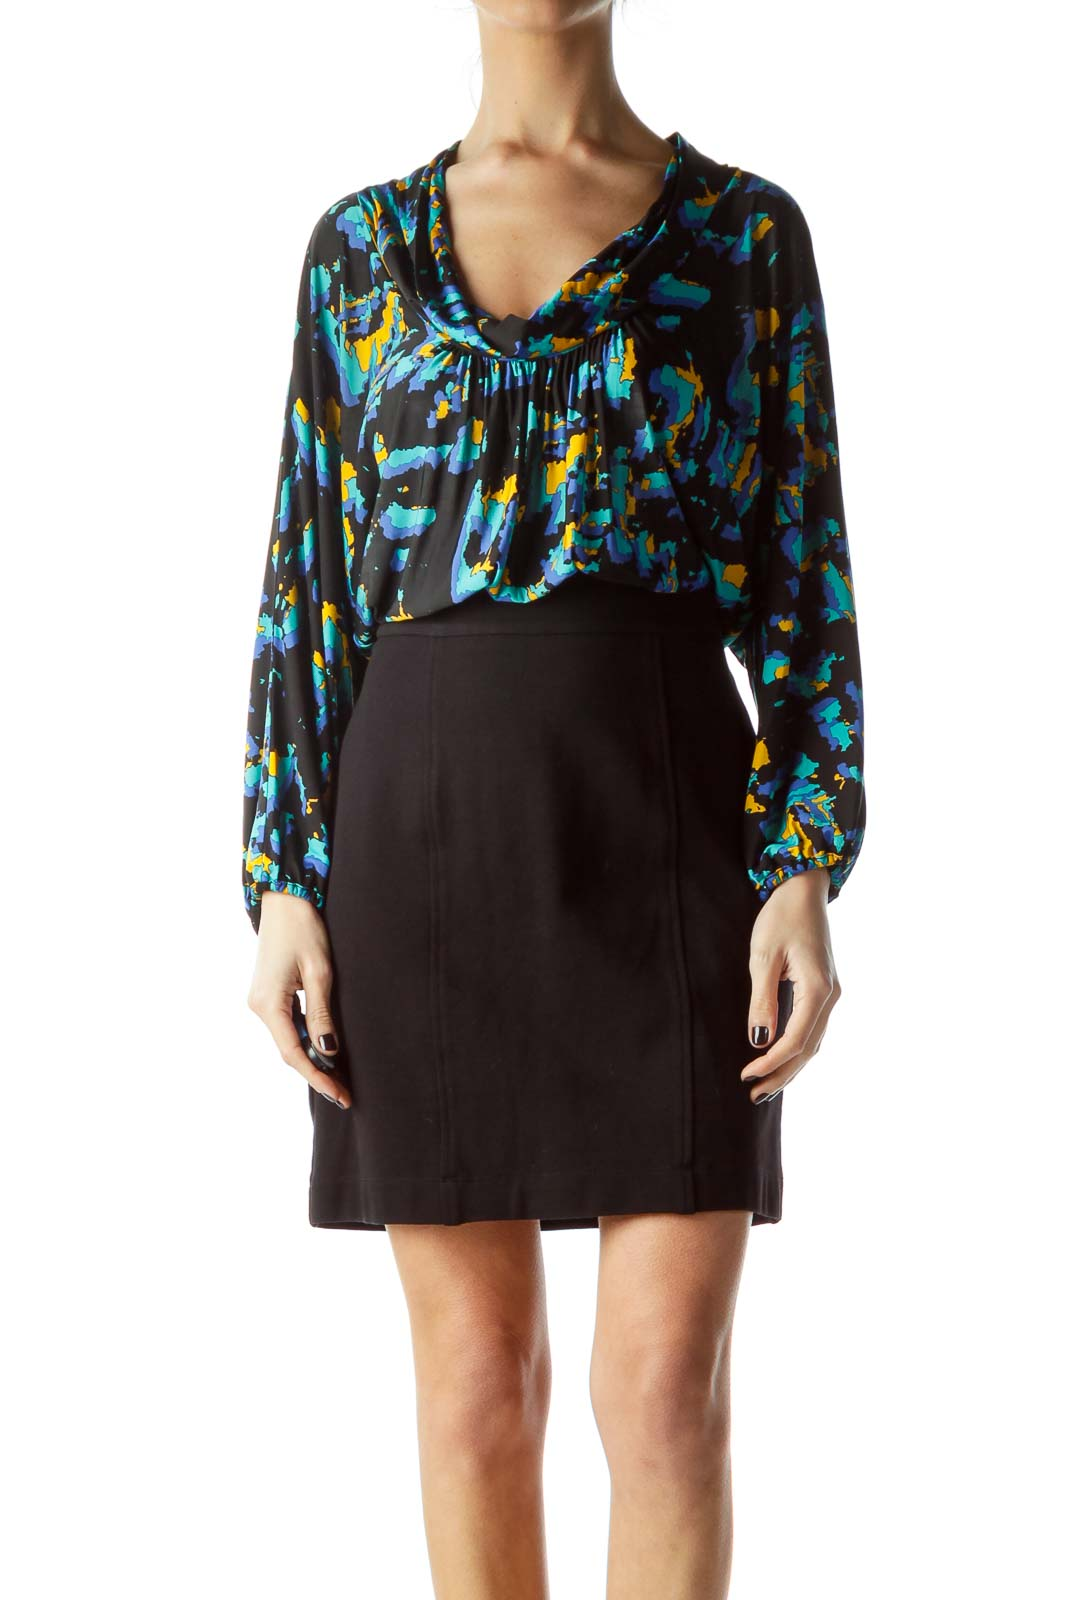 Black Bottom Yellow Blue Print Work Dress